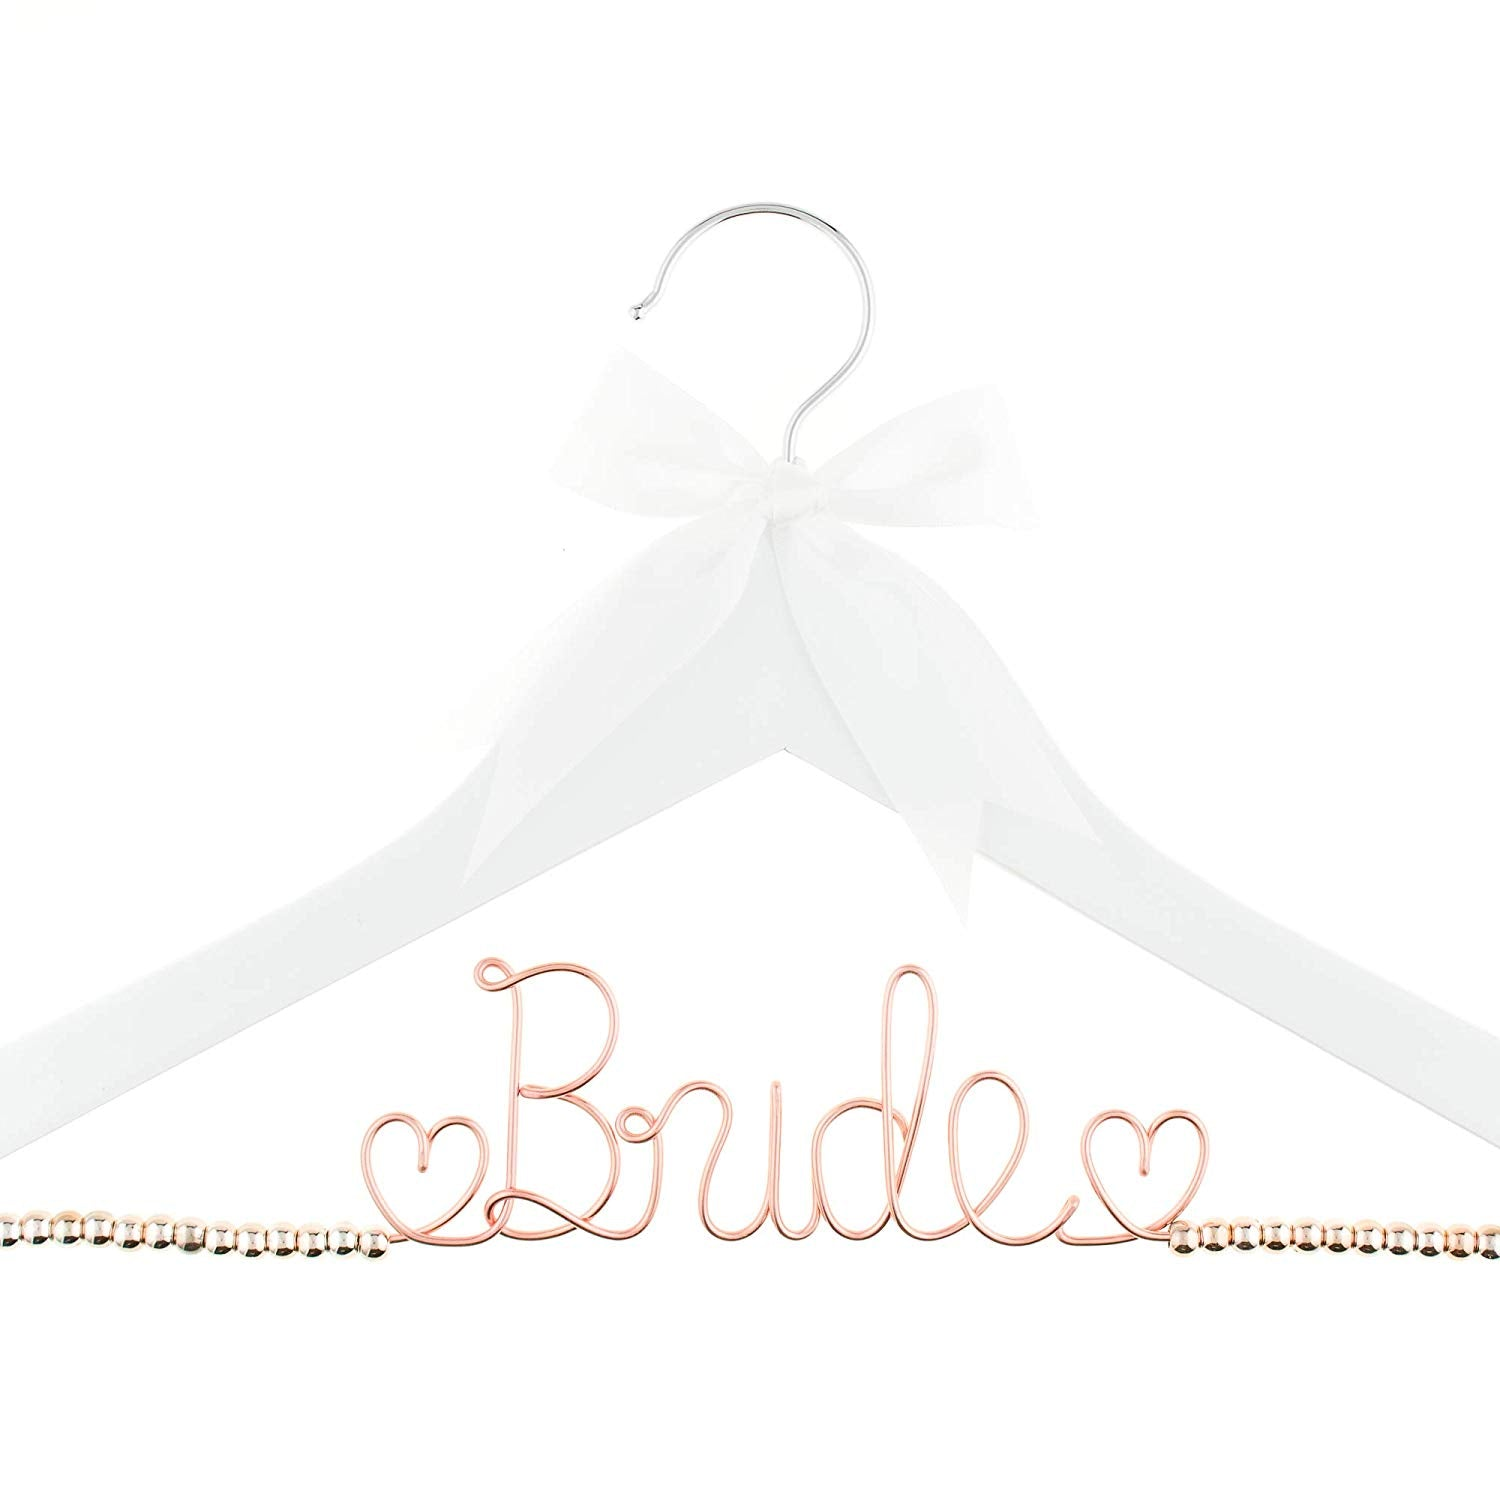 Bride Wedding Dress Hanger - White with Rose Gold Beads